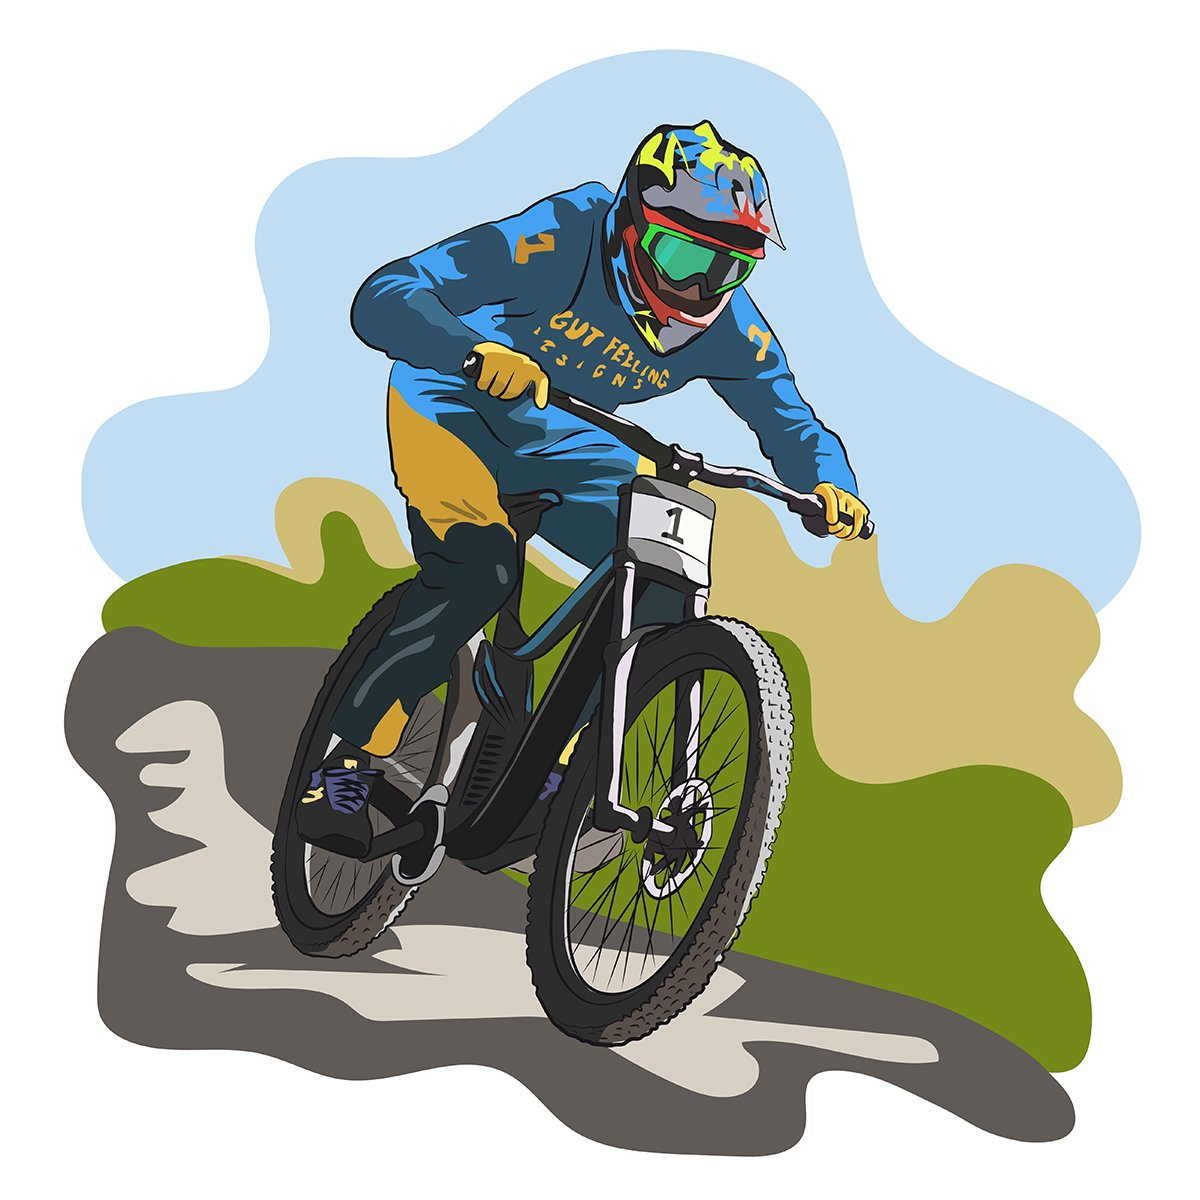 grafica vettoriale - downhill bike